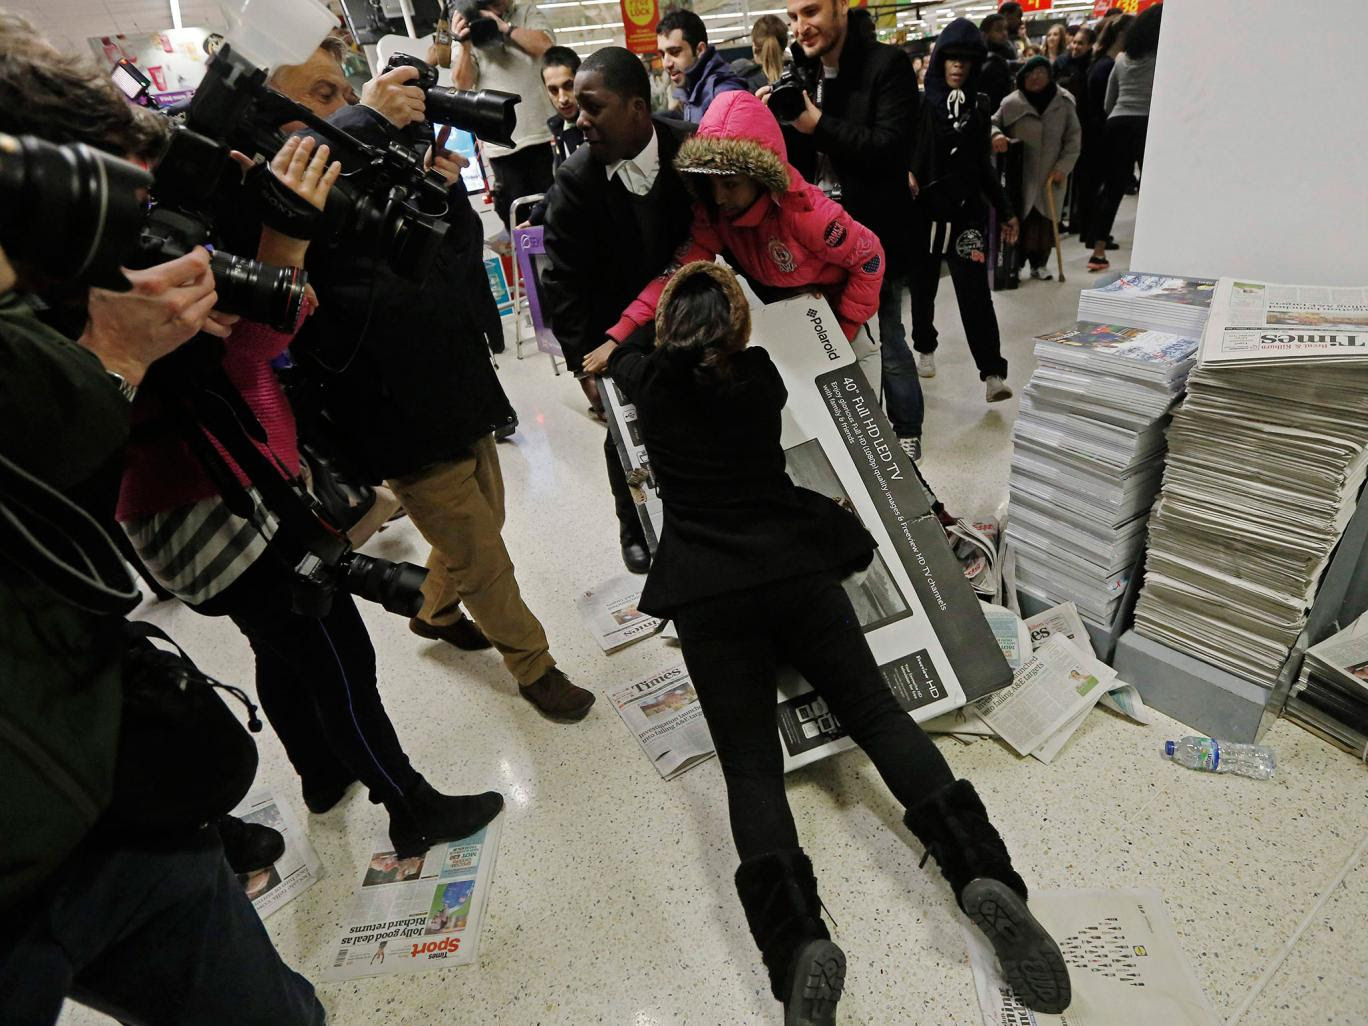 Shoppers wrestle over a television at an Asda superstore in Wembley REUTERS - Luke MacGregor